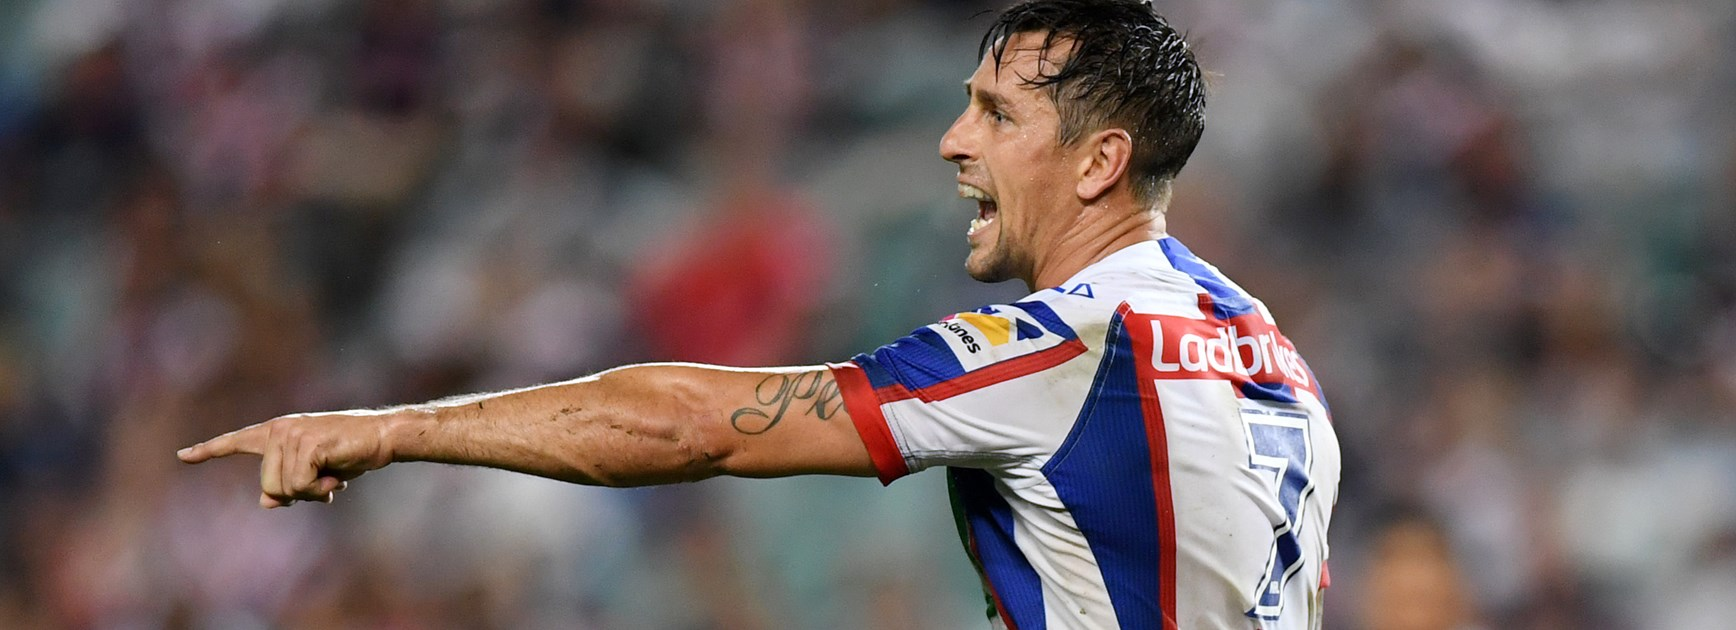 Pearce: 'That extra pressure never sat well with me'